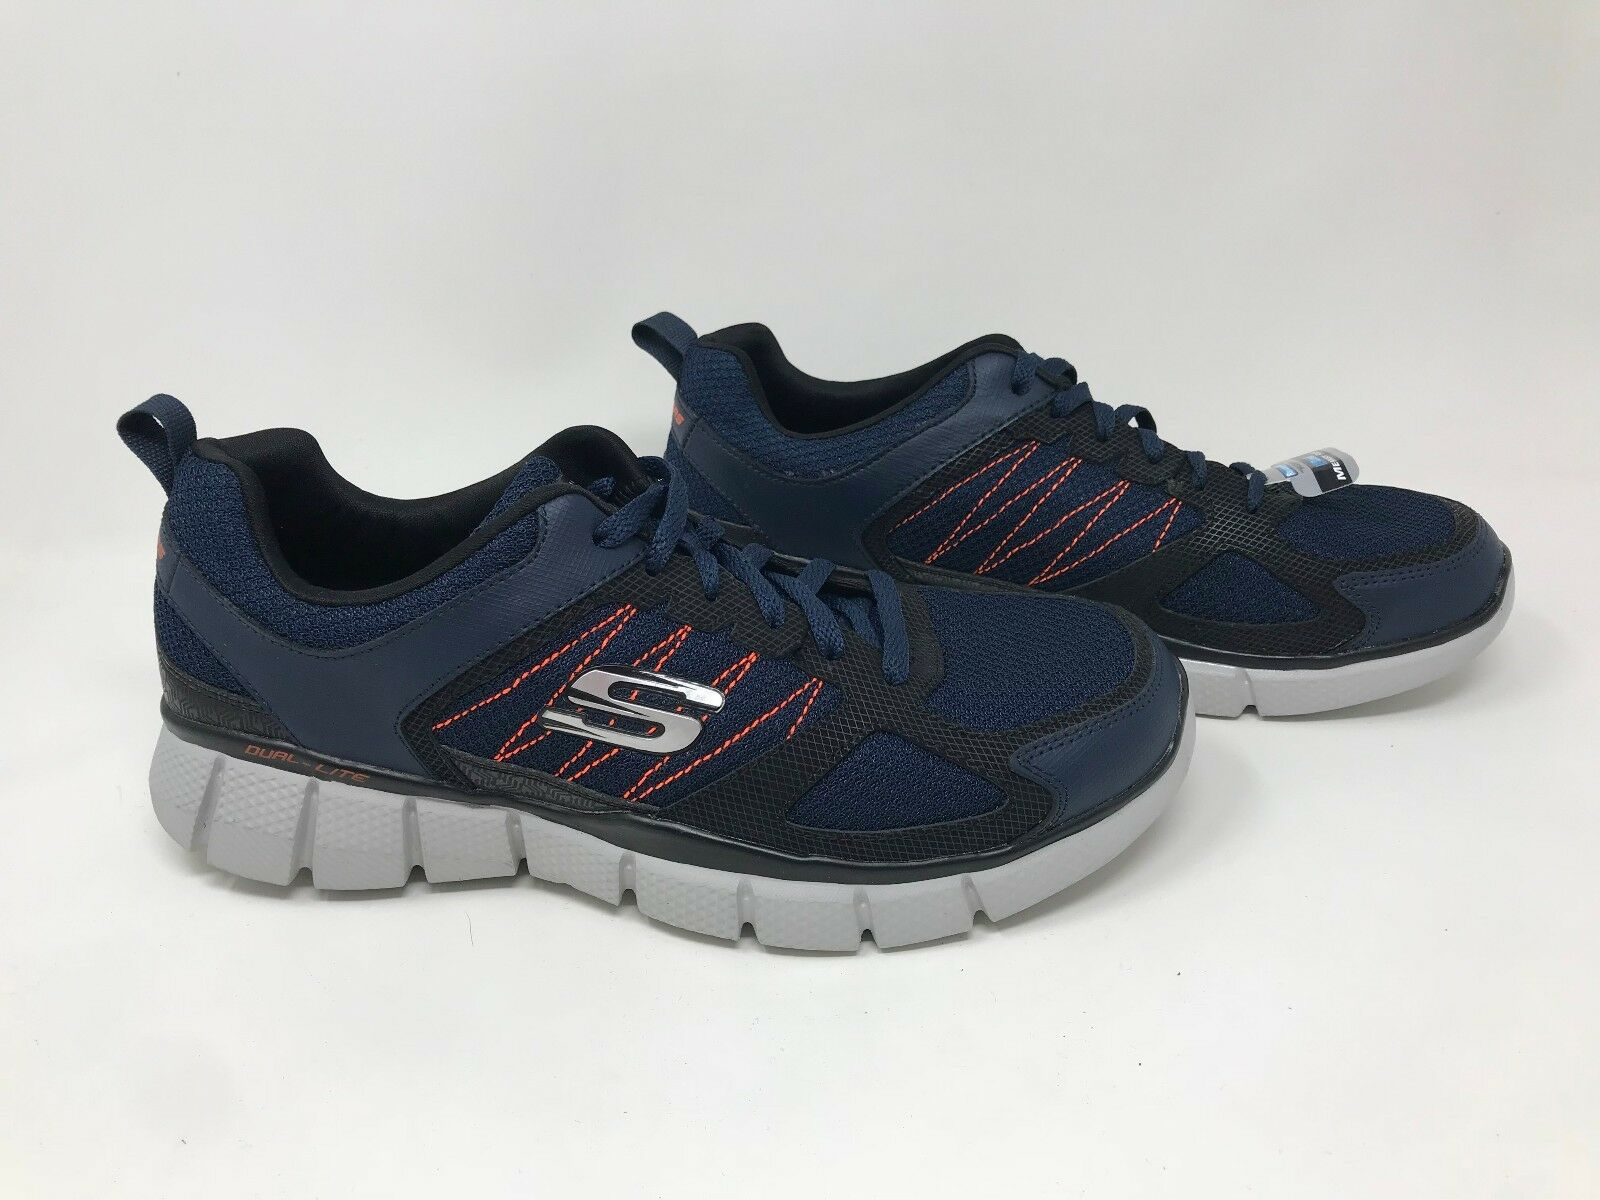 New  Men's Skechers 51532 Equalizer 2.0 On Track Athletic Sneaker -Navy bluee S42